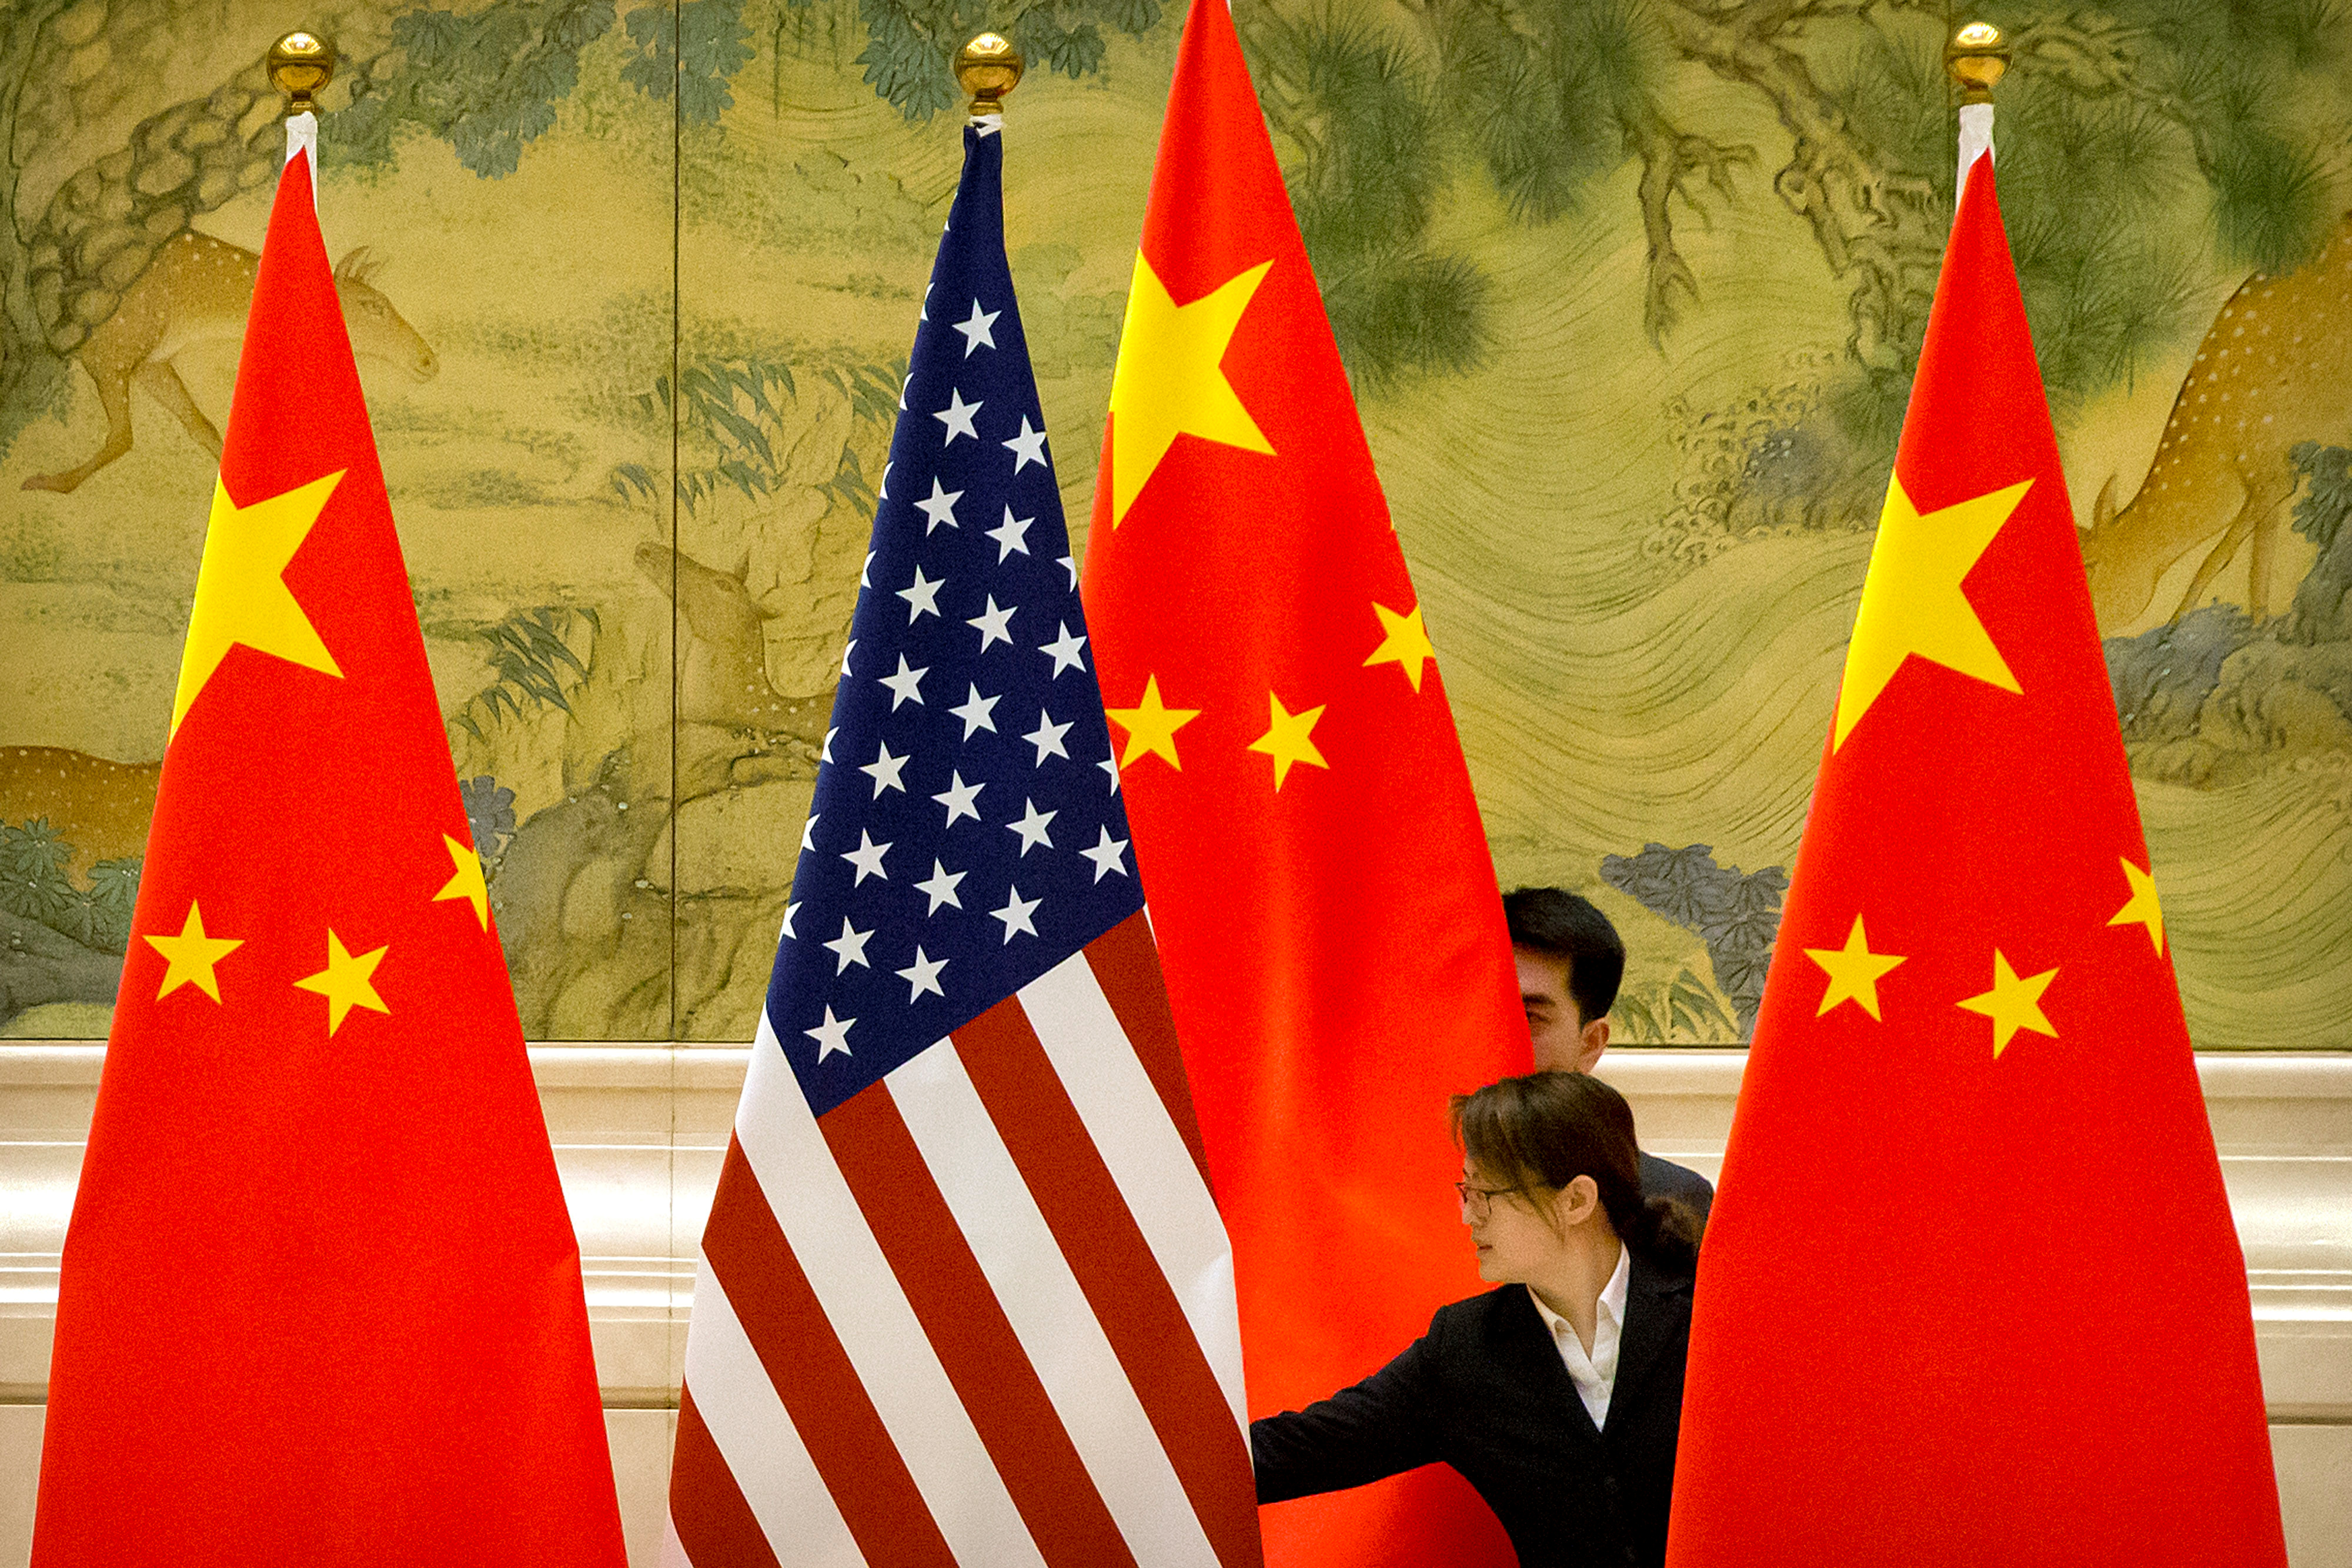 Chinese staffers adjust U.S. and Chinese flags before the opening session of Sino-U.S. trade negotiations in Beijing, Feb. 14, 2019. Mark Schiefelbein/Pool via REUTERS/File Photo